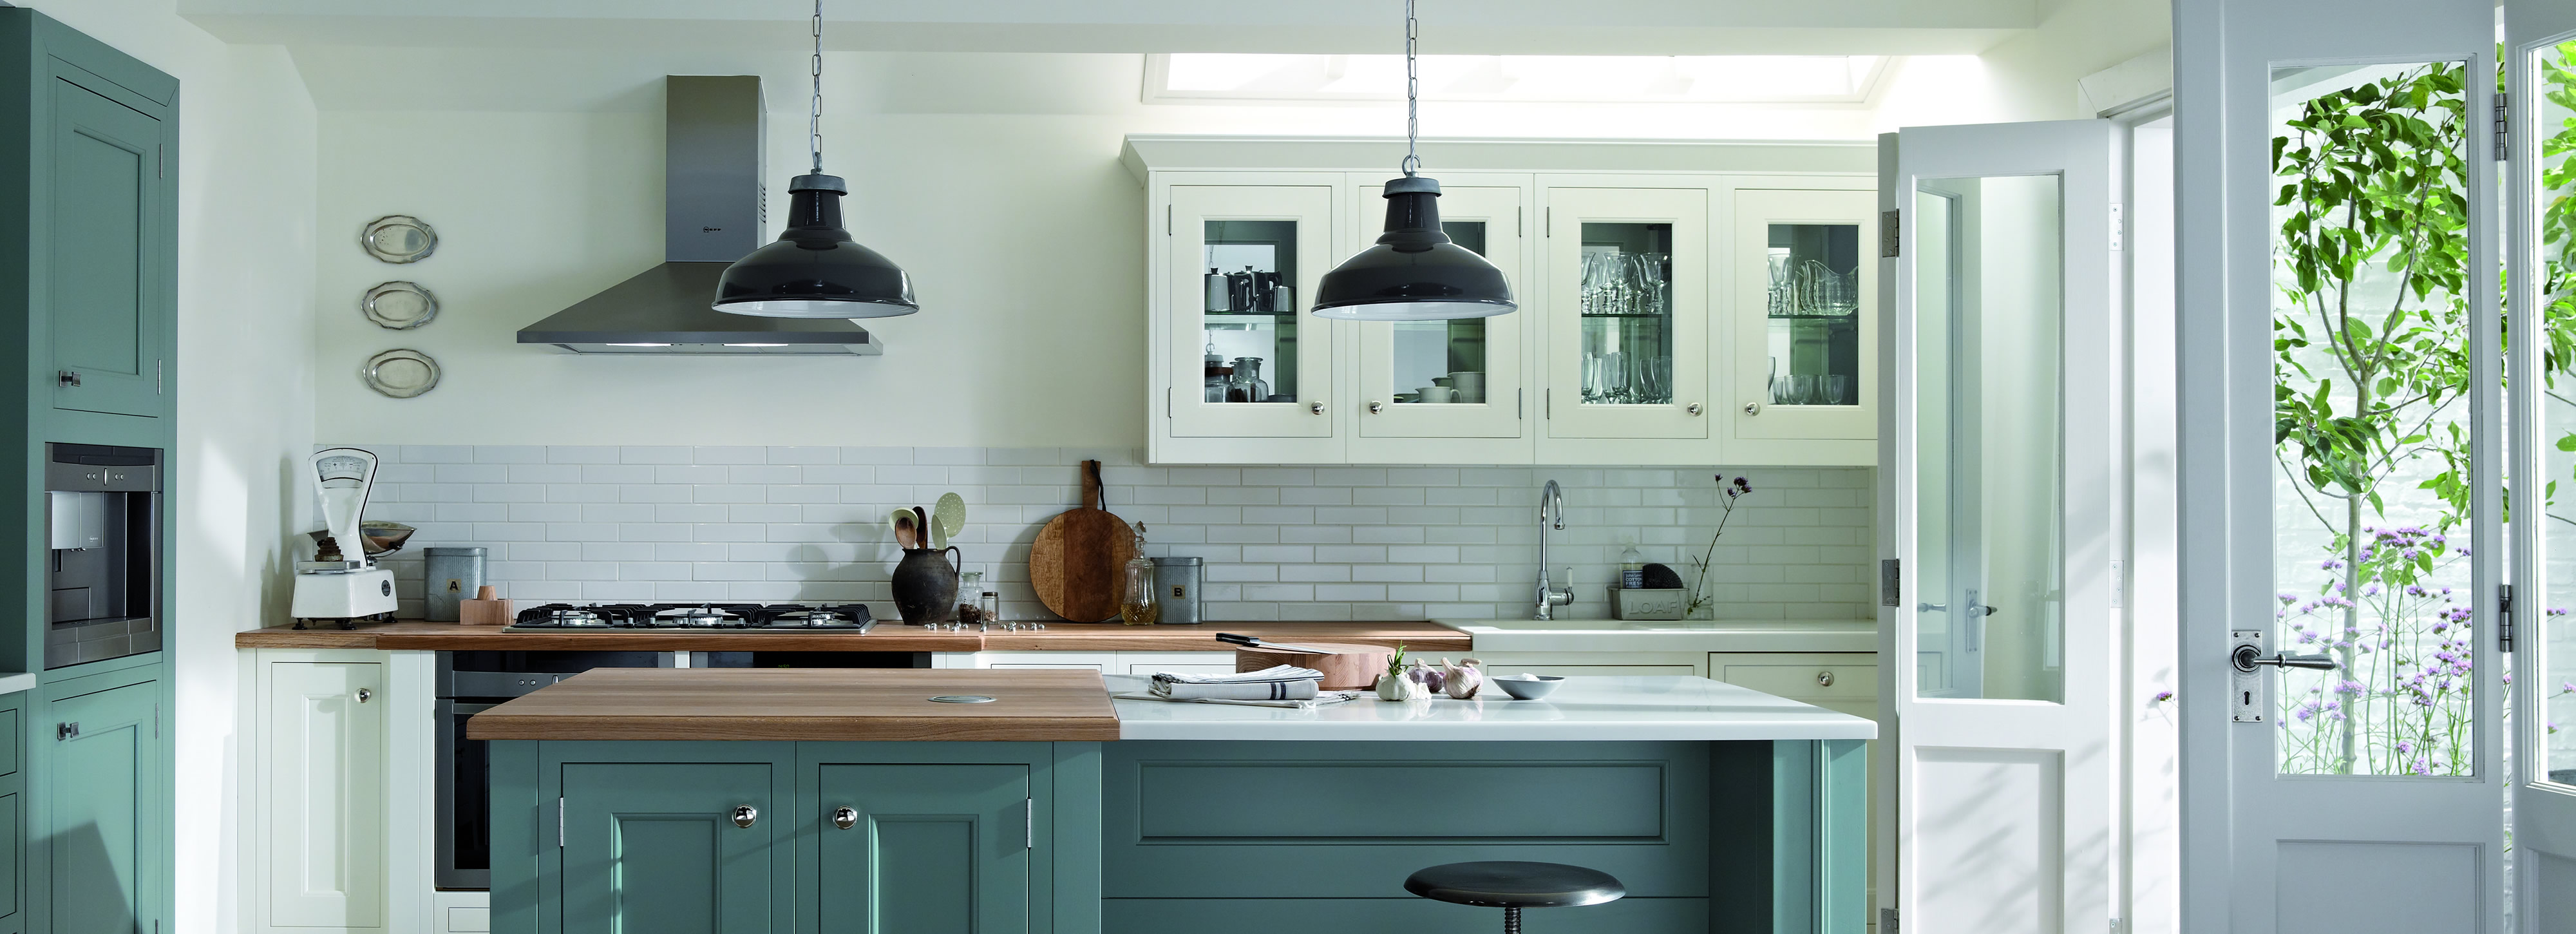 Painted Kitchens painted kitchen design and installation, surrey - raycross interiors